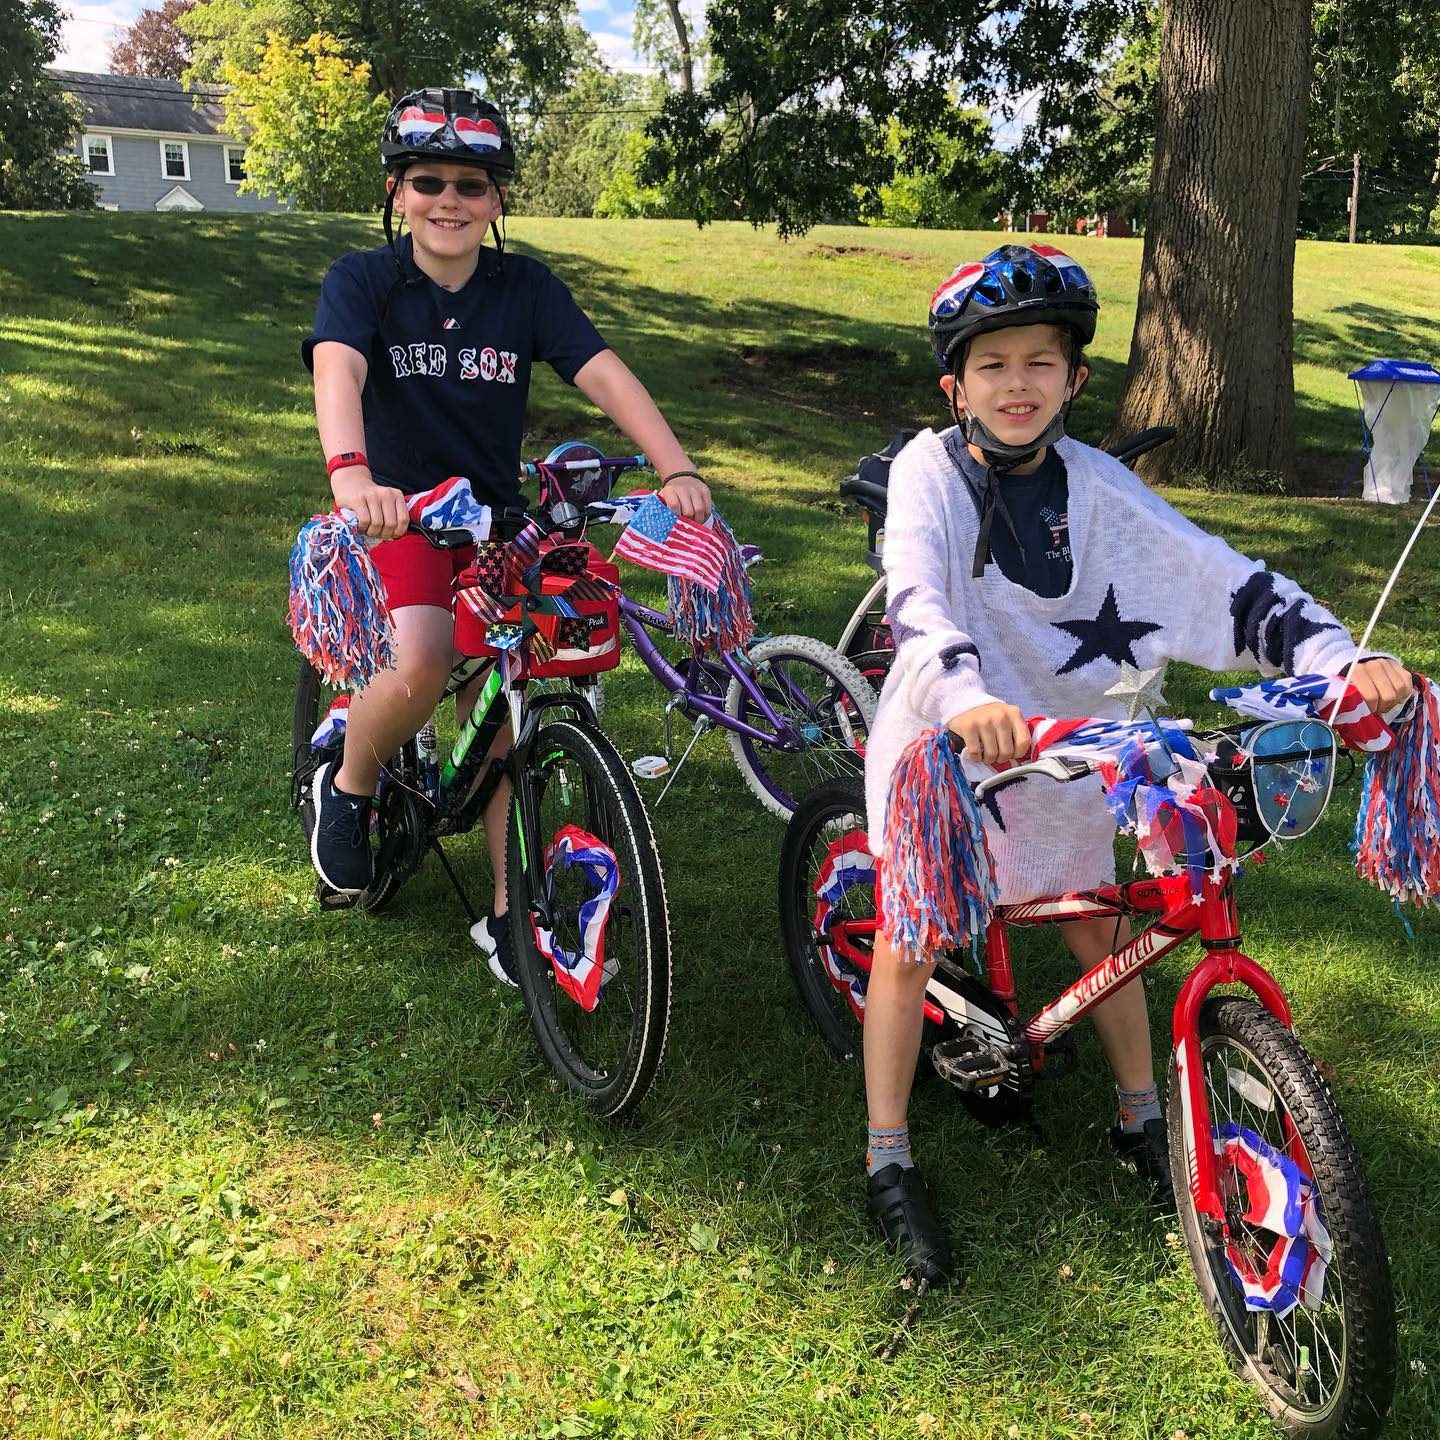 Boys on bike in red, white and blue